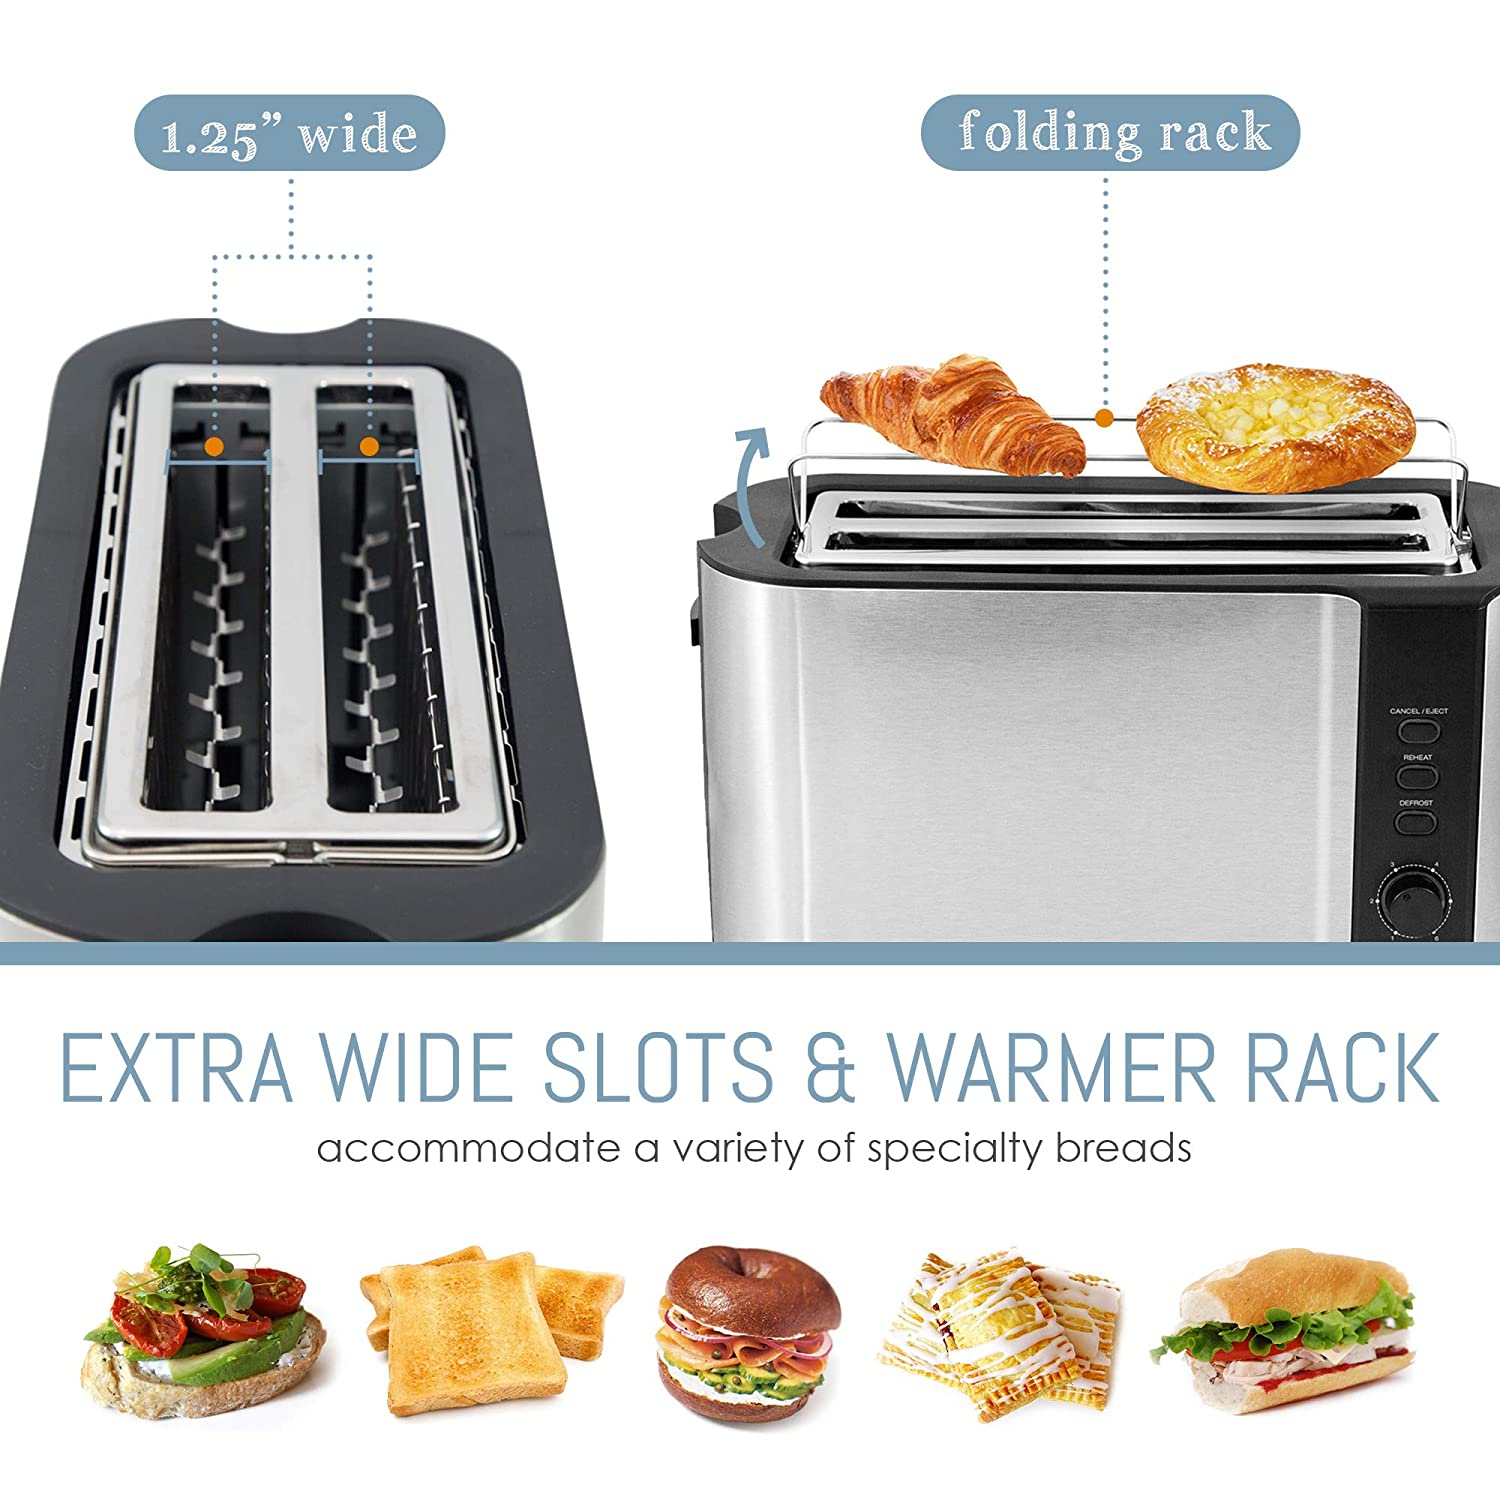 Specialty Breads Reheat Cancel /& Defrost Settings Silver /& Black 4 Slice 1300 Watts Bagels Maxi-Matic ECT-3100 Stainless Steel Long Slot Toaster